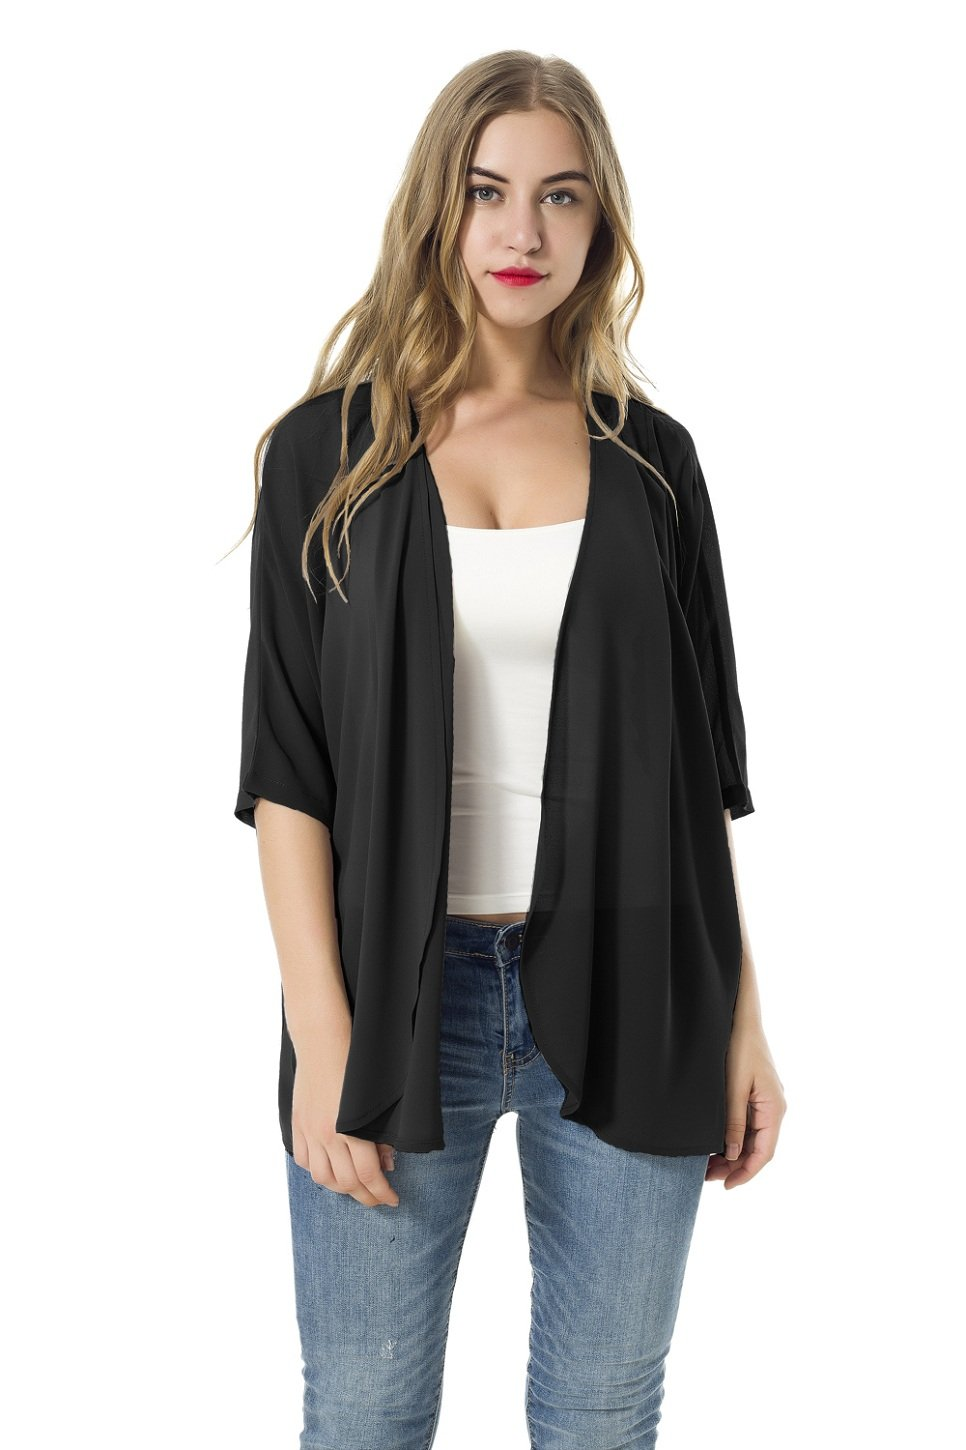 XINAO Women's Open Front Casual Solid Comfy Light Short Sleeve Chiffon Cardigan (Black, L)